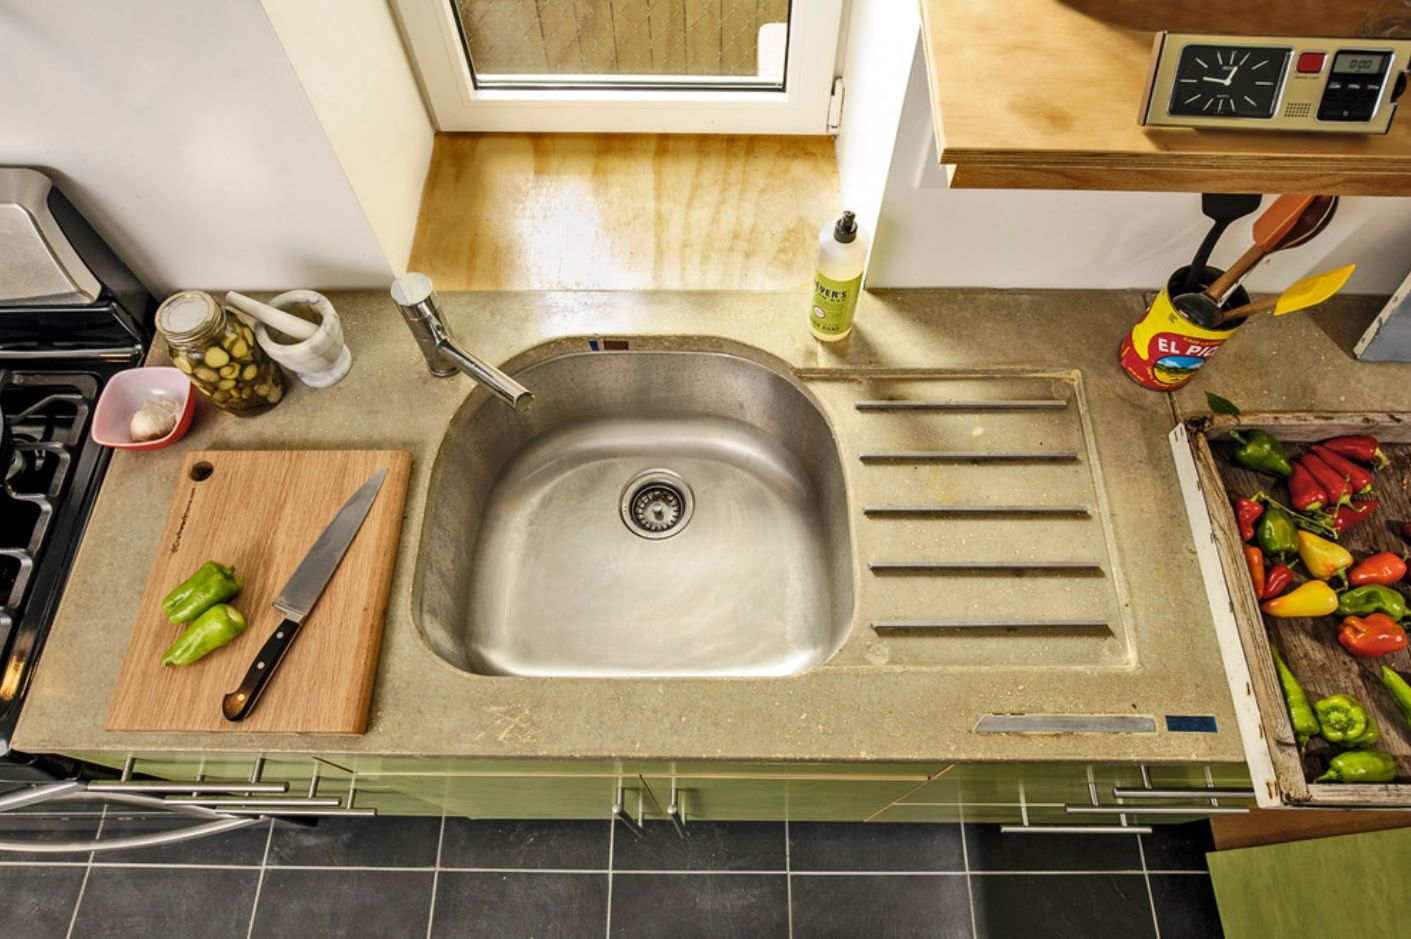 DIY Pouring Concrete Countertops. Interior Usage, Photos, Ideas. Steel sink built into concrete top